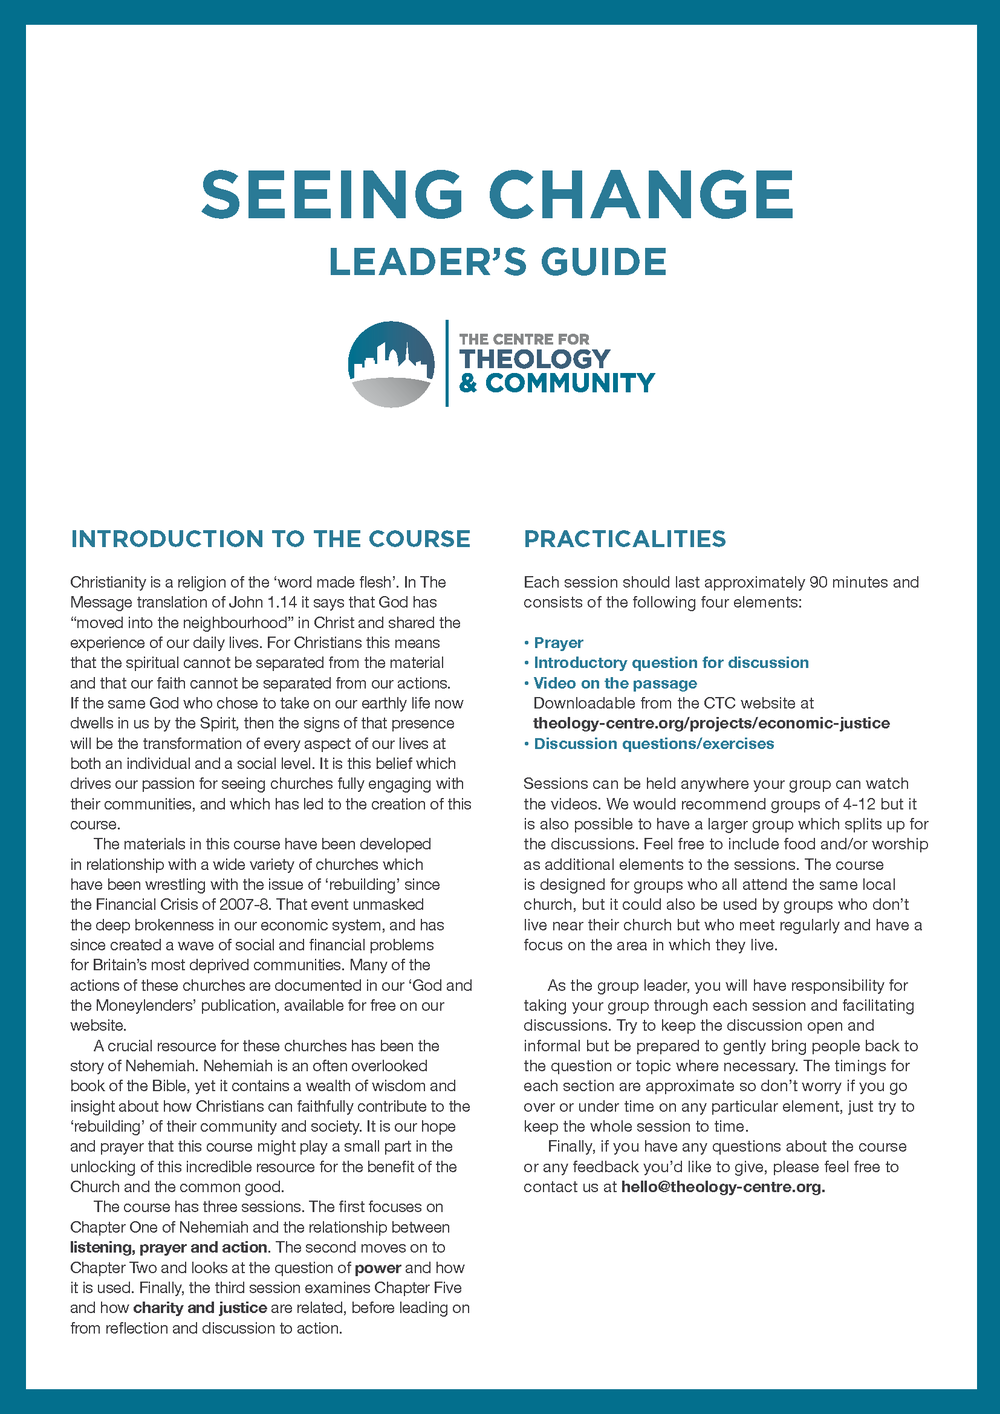 Seeing Change Course - Leader's Guide Credit Champions  |  Download PDF